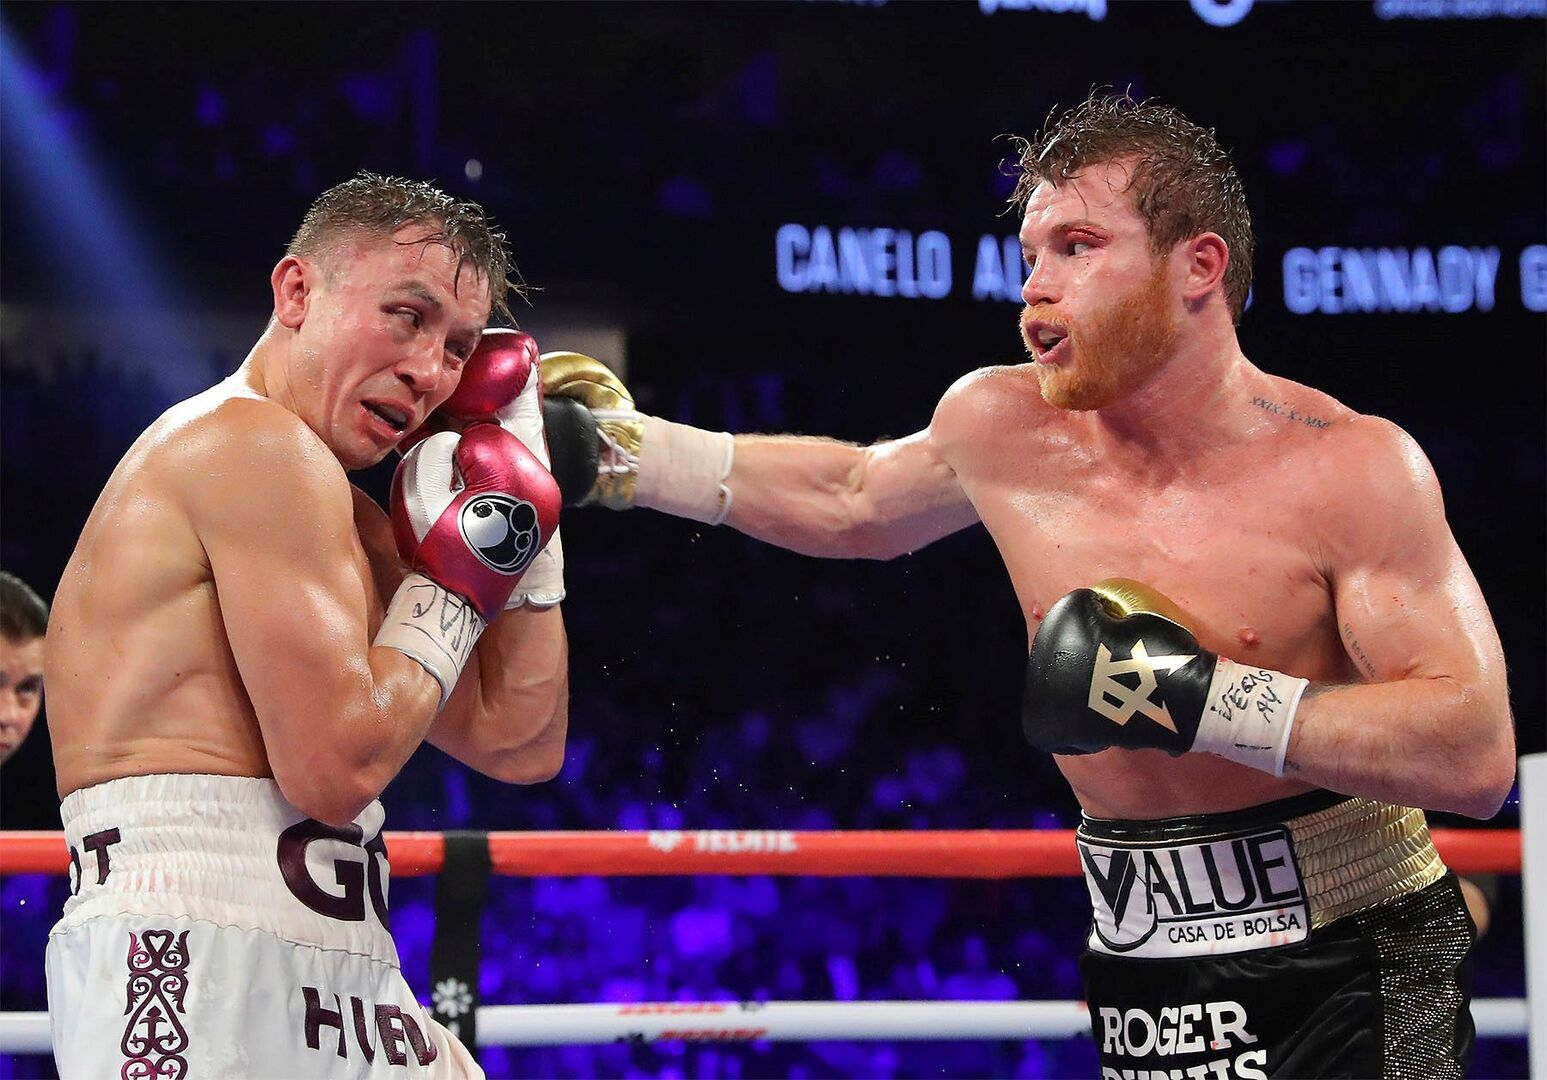 canelo fight december 15, 2018